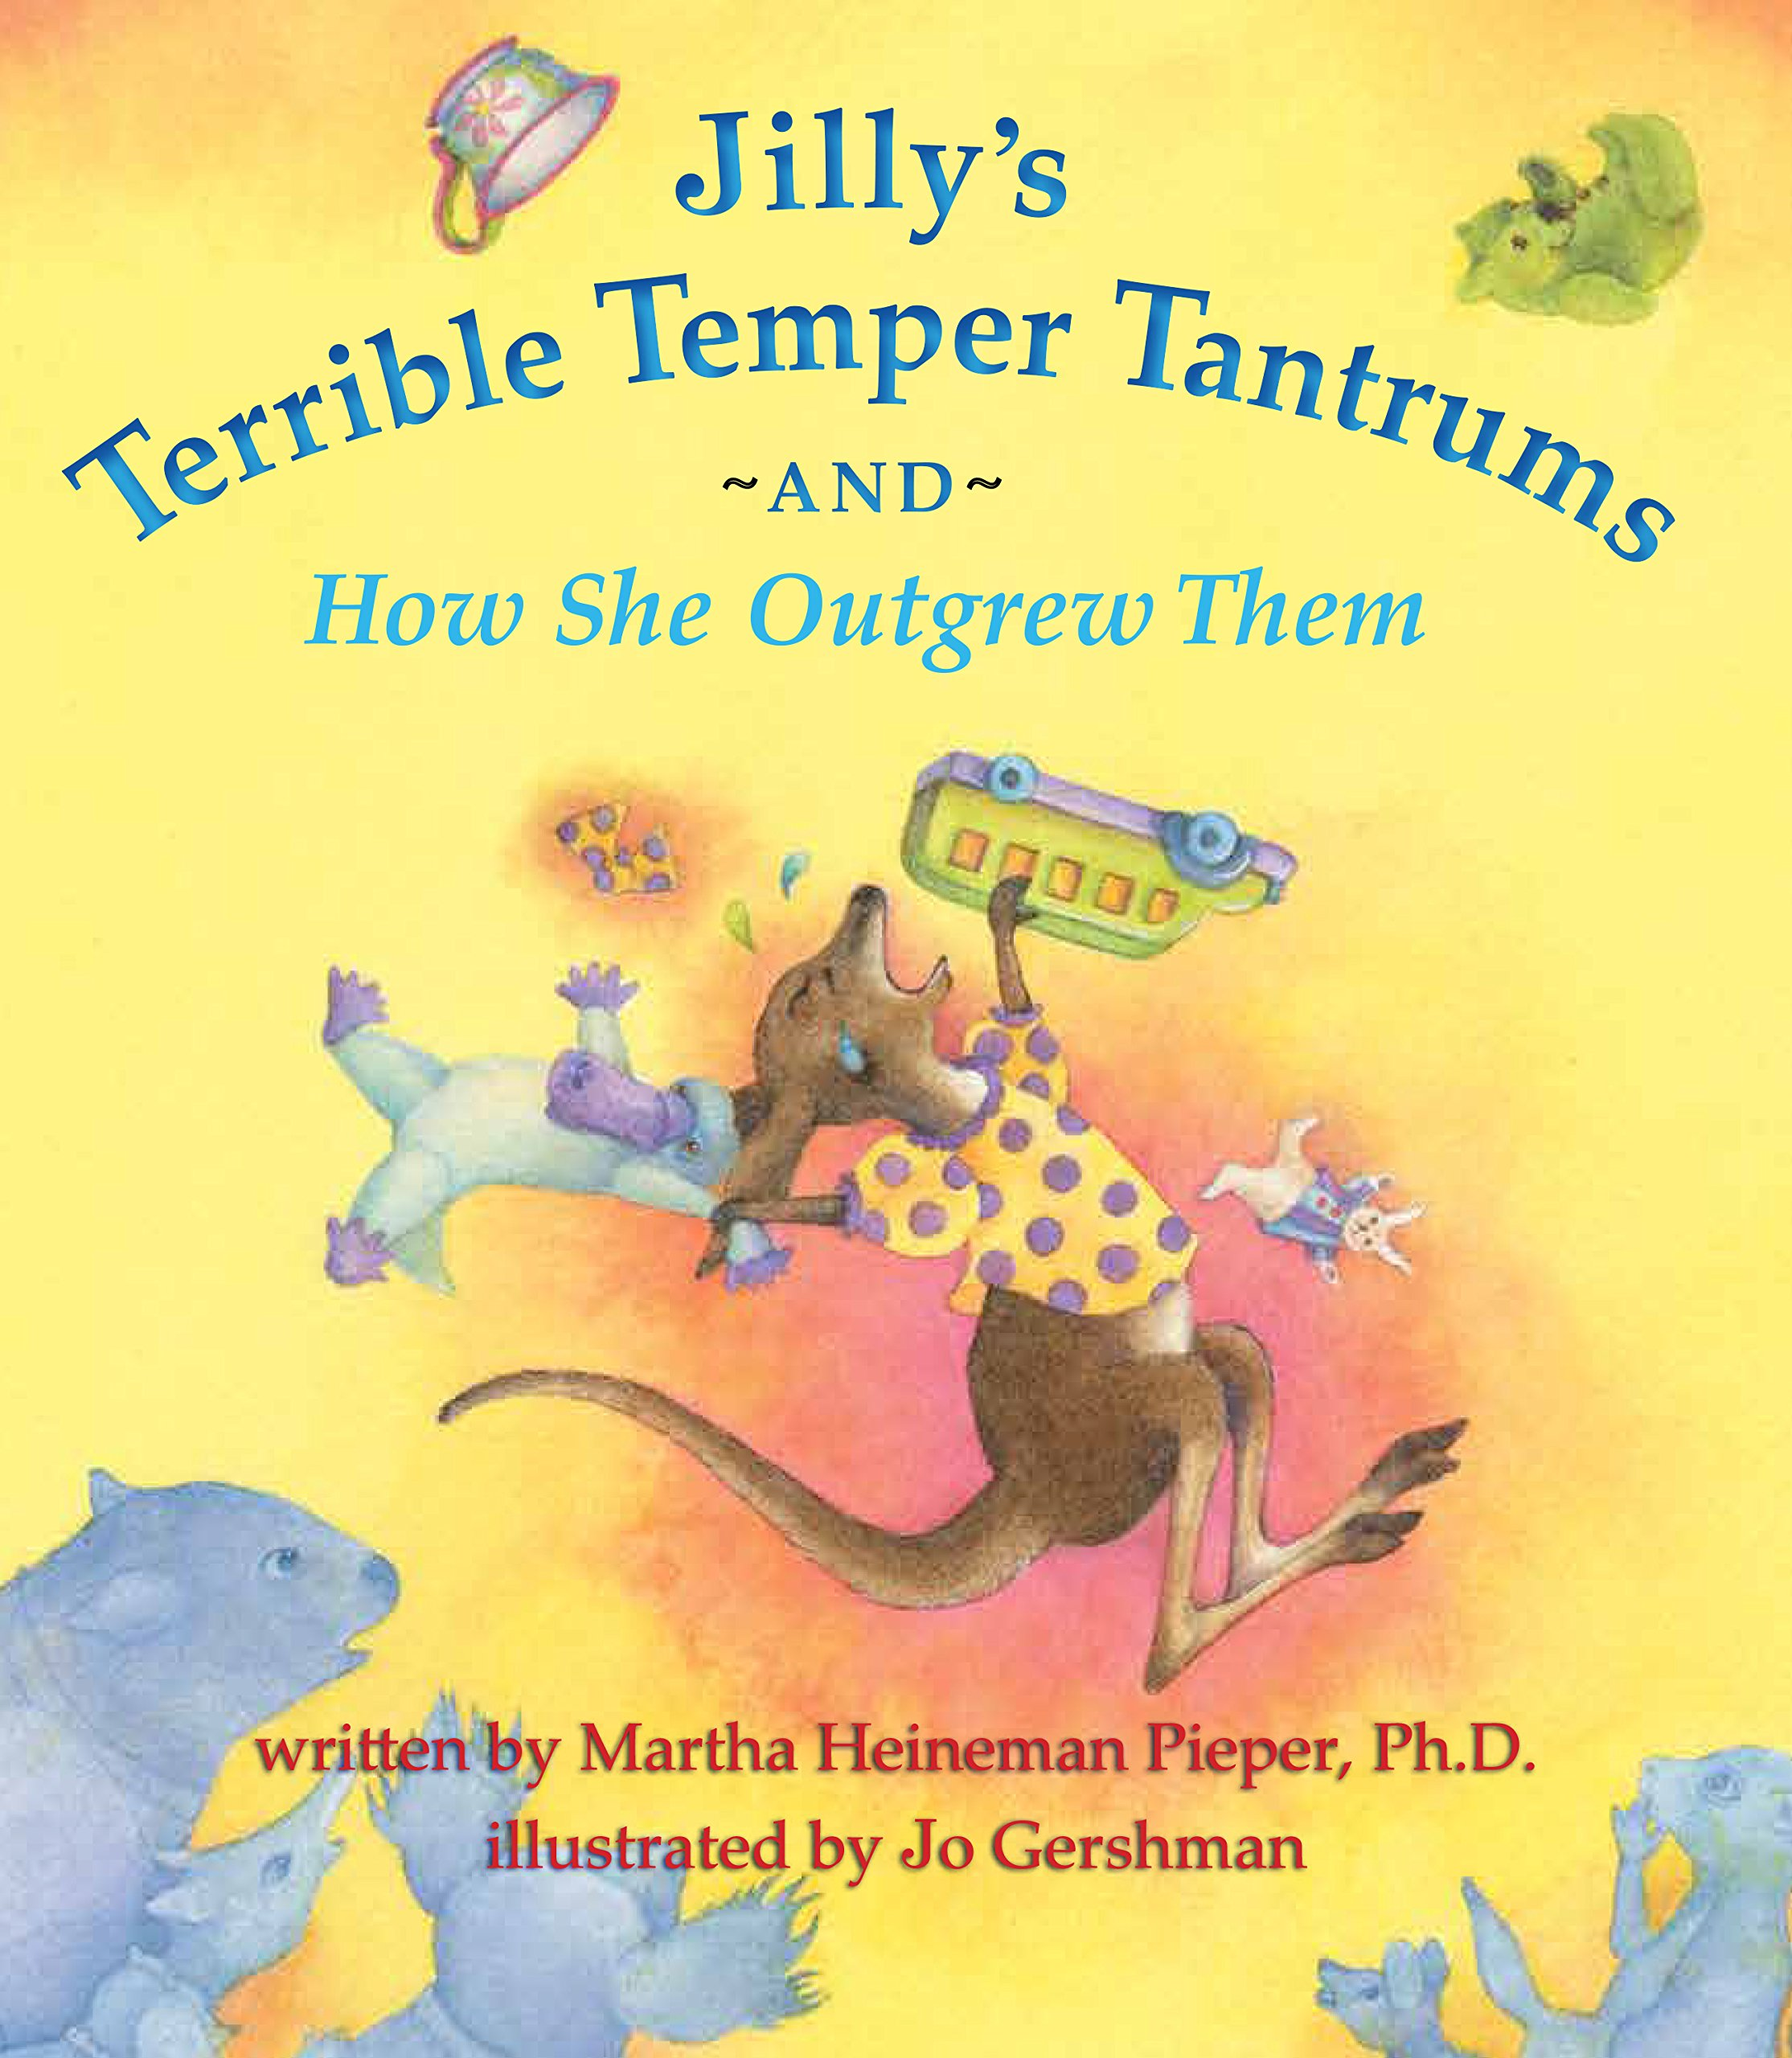 Jilly's Terrible Temper Tantrums: And How She